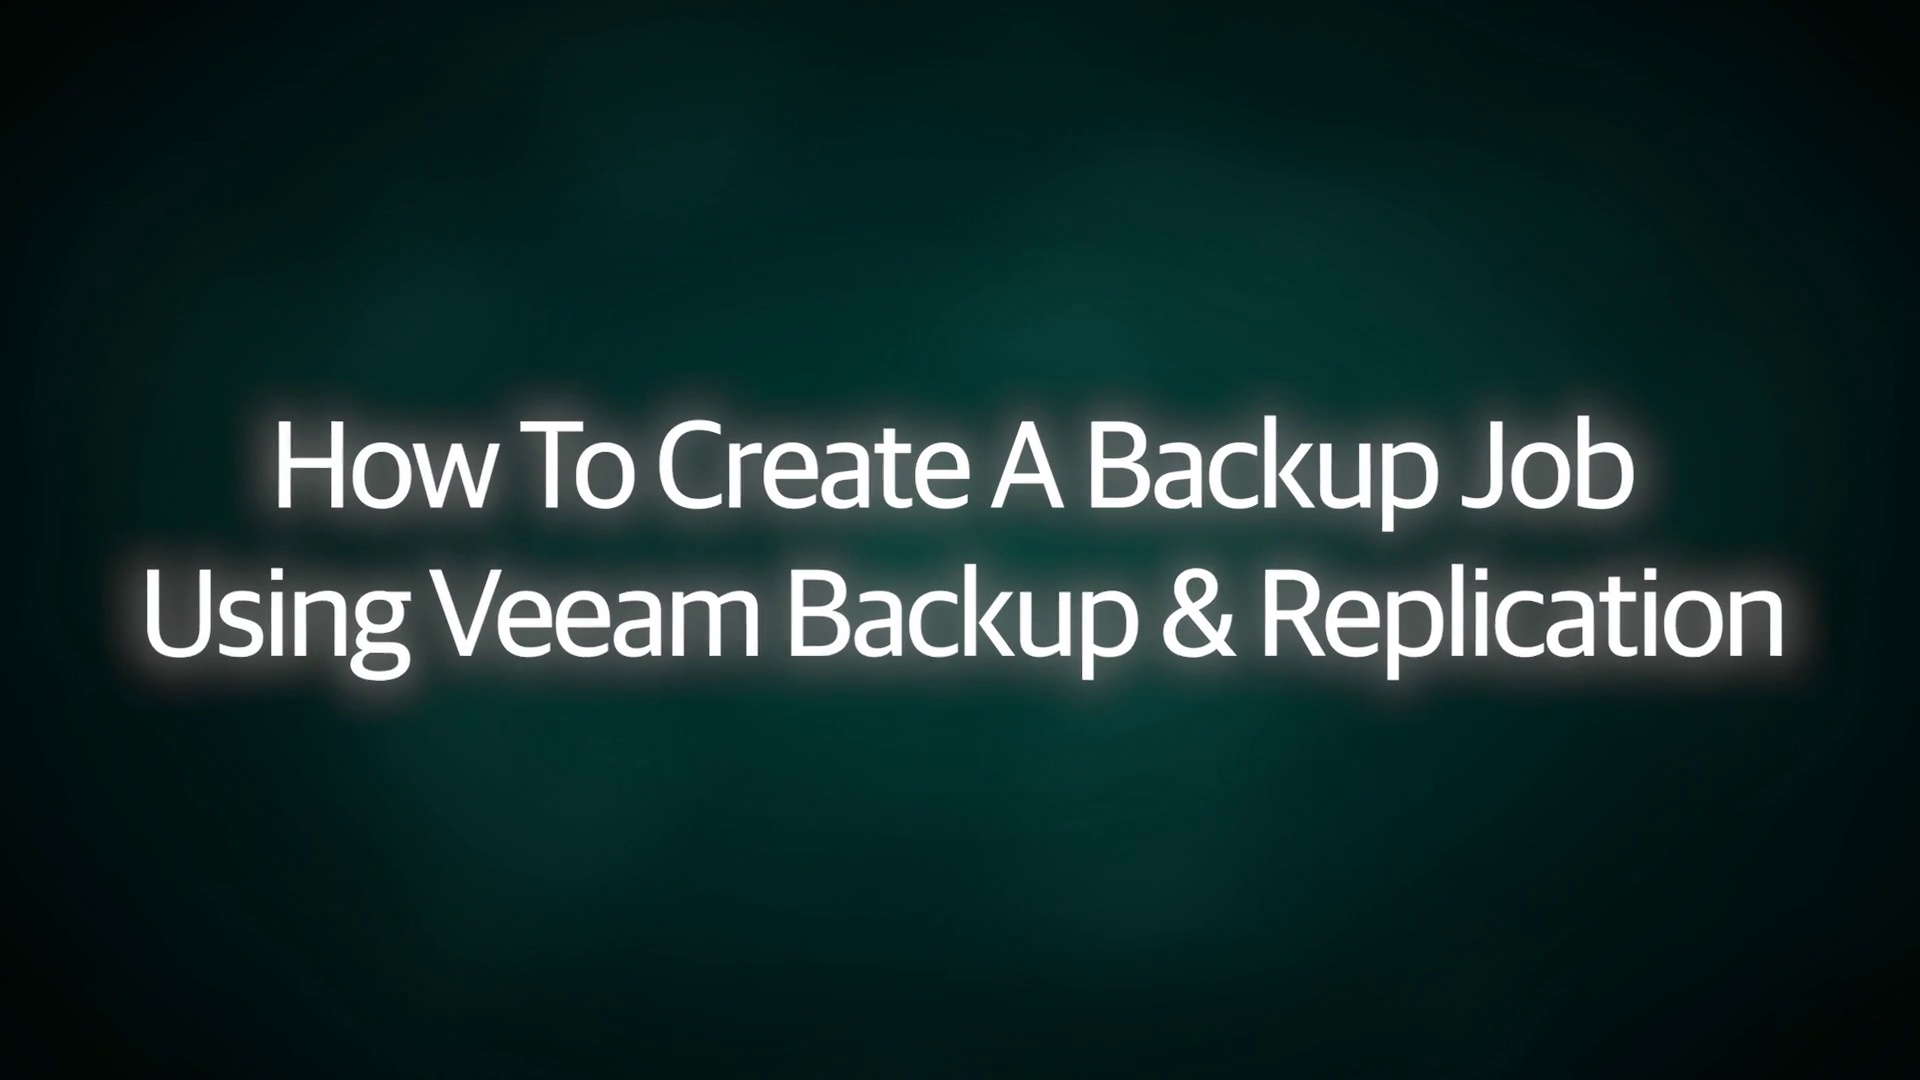 How to Create a Backup Job using Veeam Backup & Replication